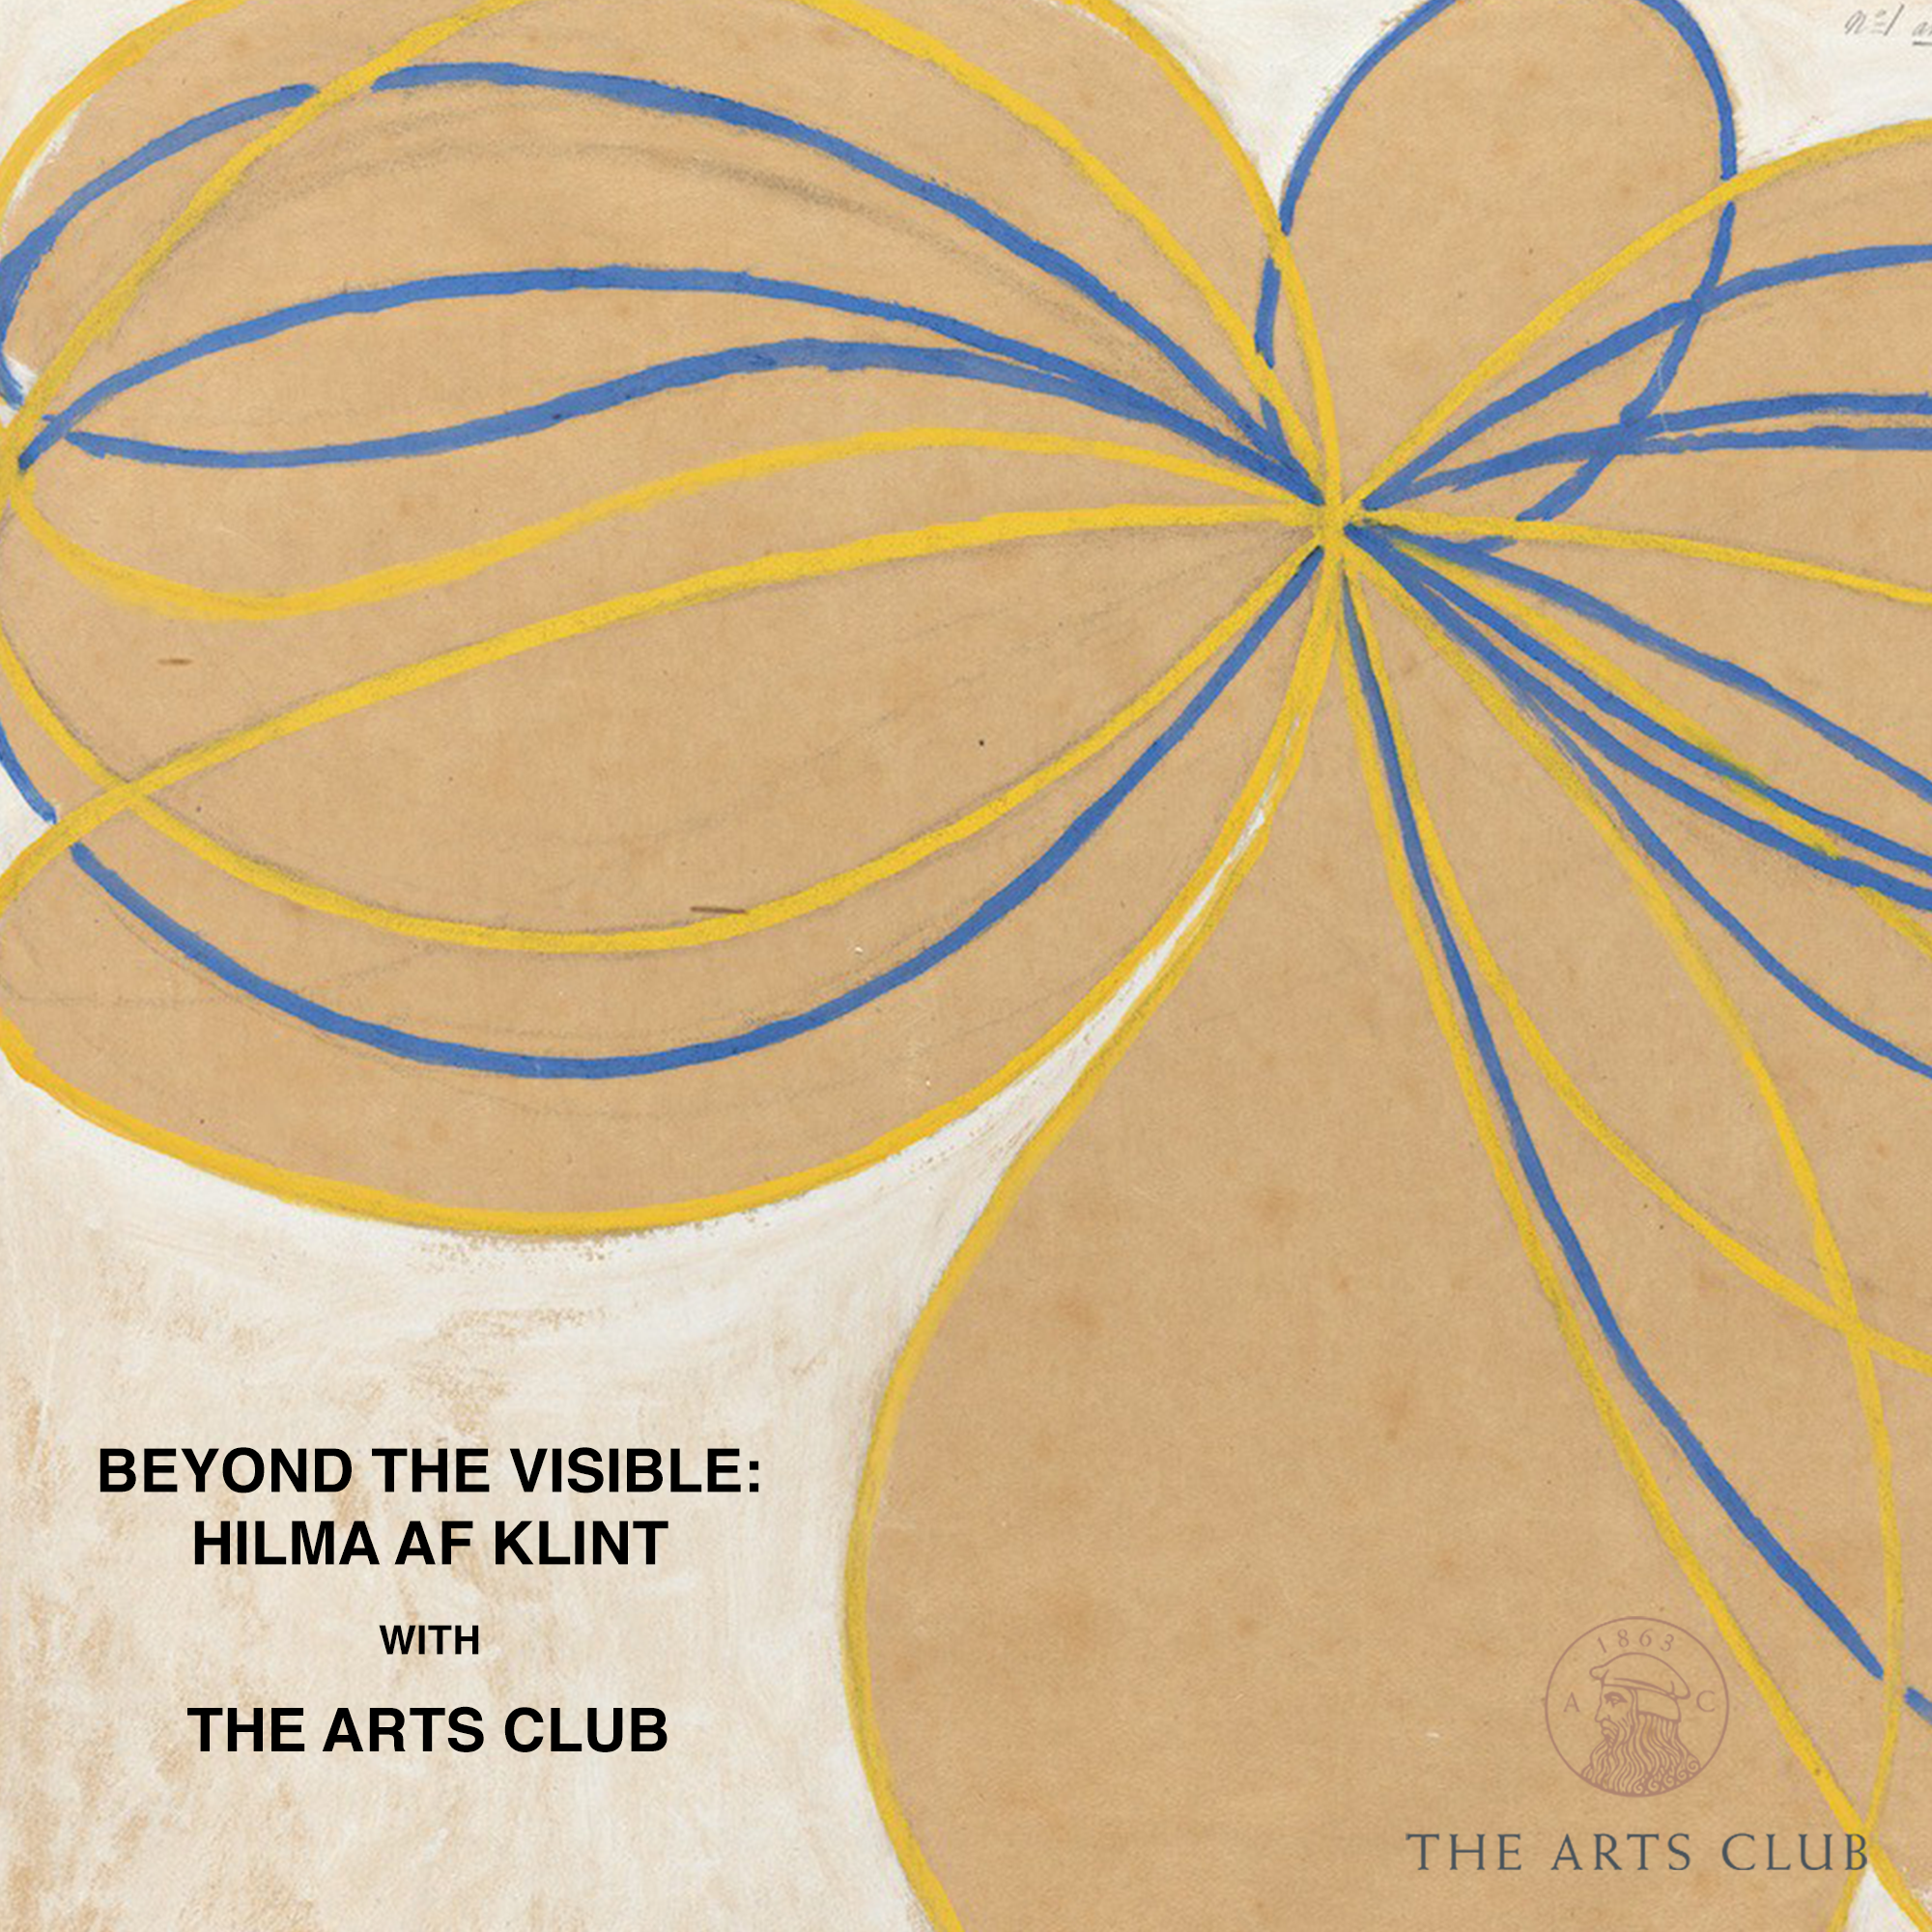 Beyond the Visible: Hilma af Klint with The Arts Club